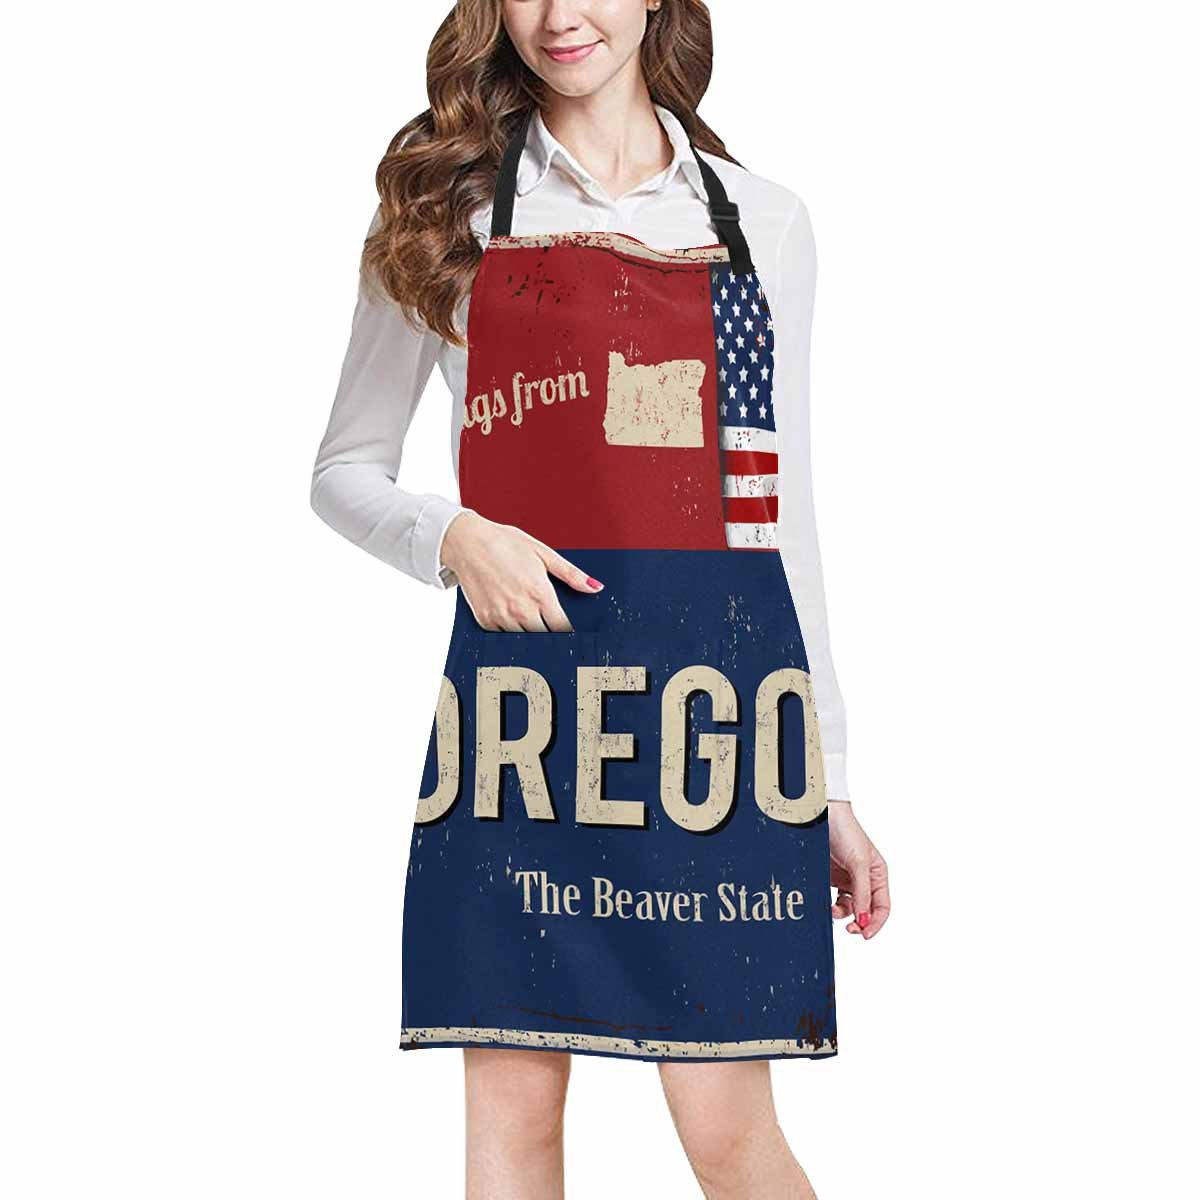 InterestPrint Greetings from Oregon the Beaver State with American Flag Chef Aprons Professional Kitchen Chef Bib Apron with Pockets Adjustable Neck Strap, Plus Size